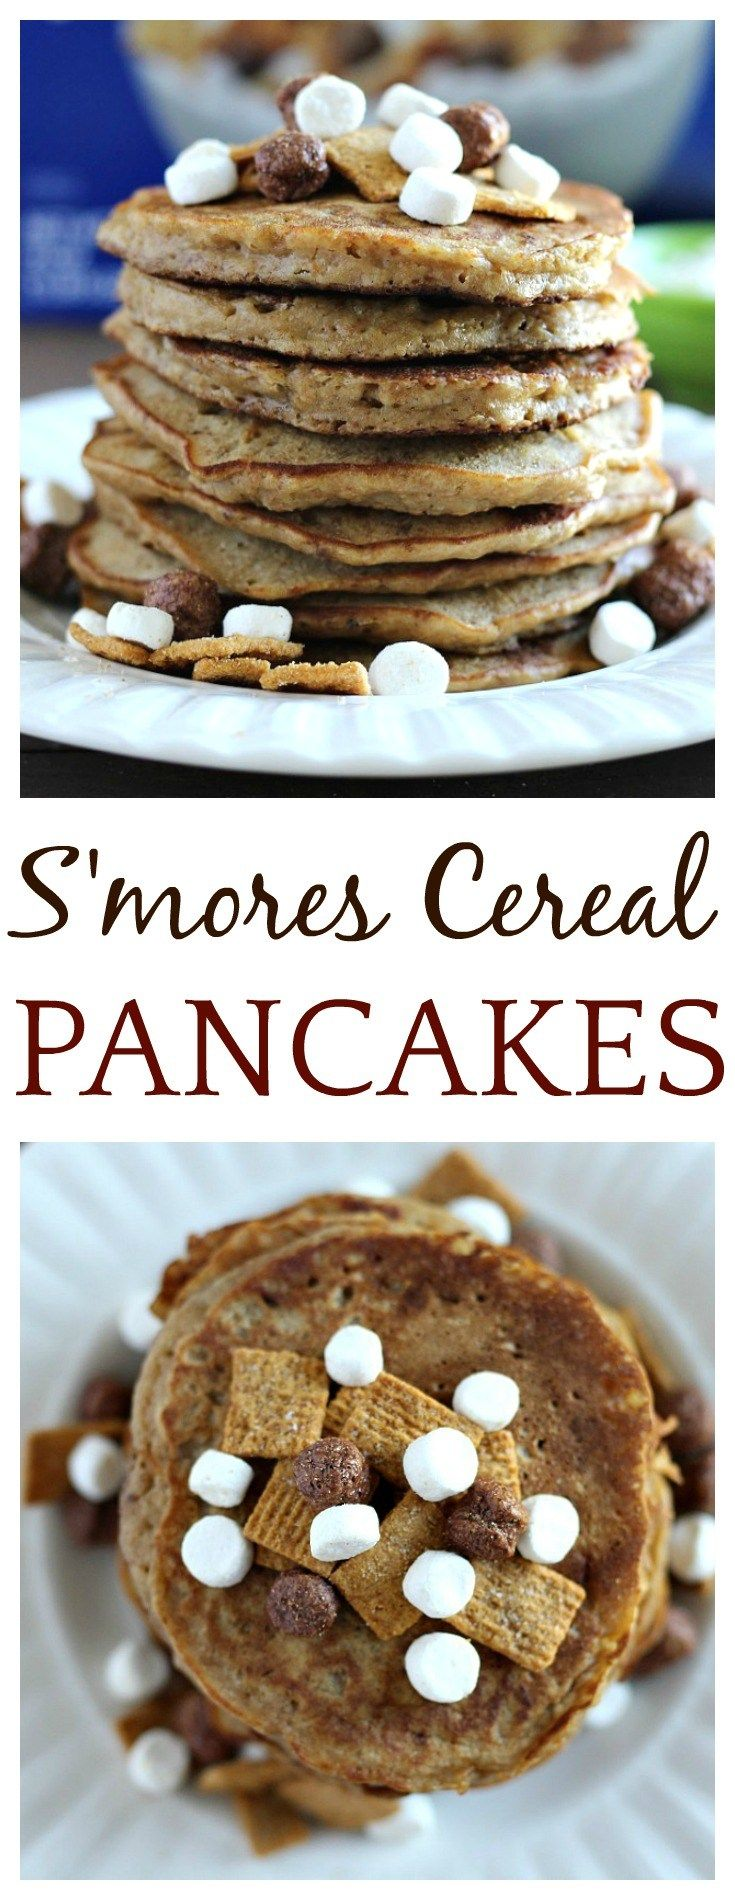 Have a little more fun in the morning with this easy breakfast recipe for delicious S'mores Cereal Pancakes! Kids and adults with love them! | pancakes recipe, brunch recipe, s'mores recipe